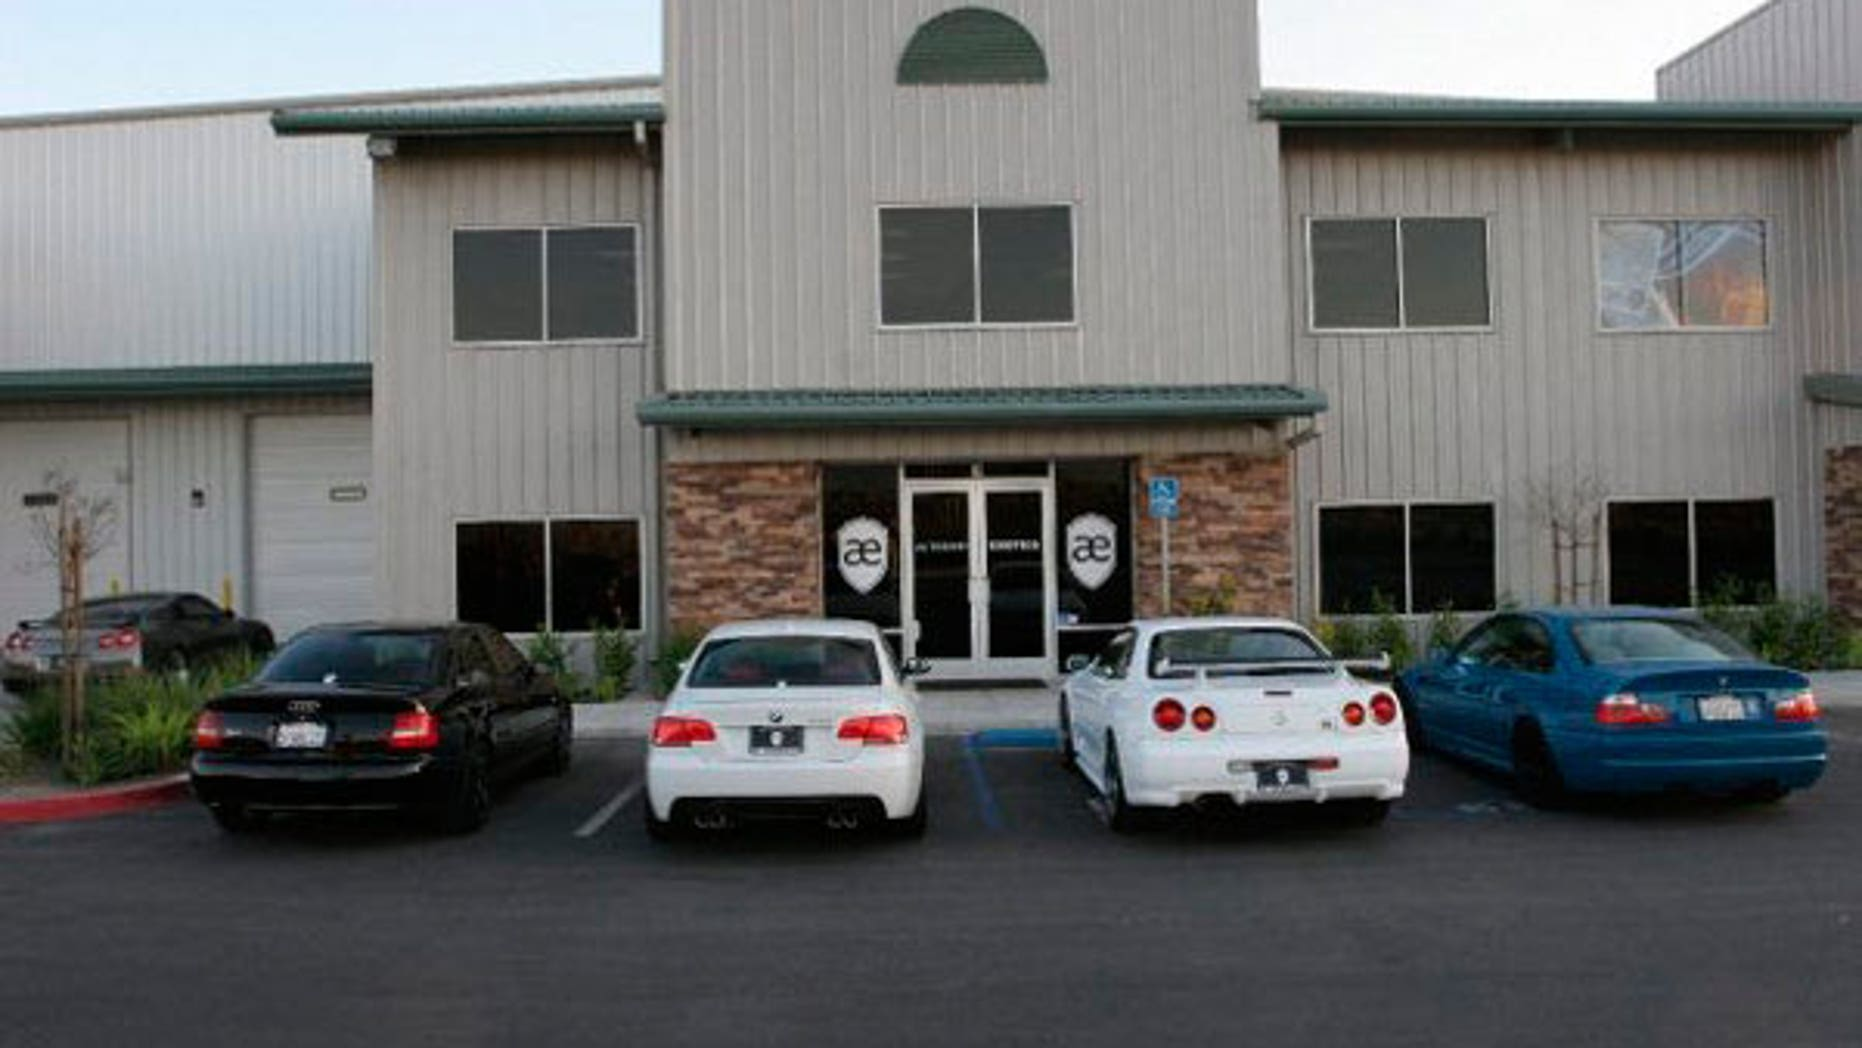 Paul Walker's car shop that he co-owned with Roger Rodas will be closing.